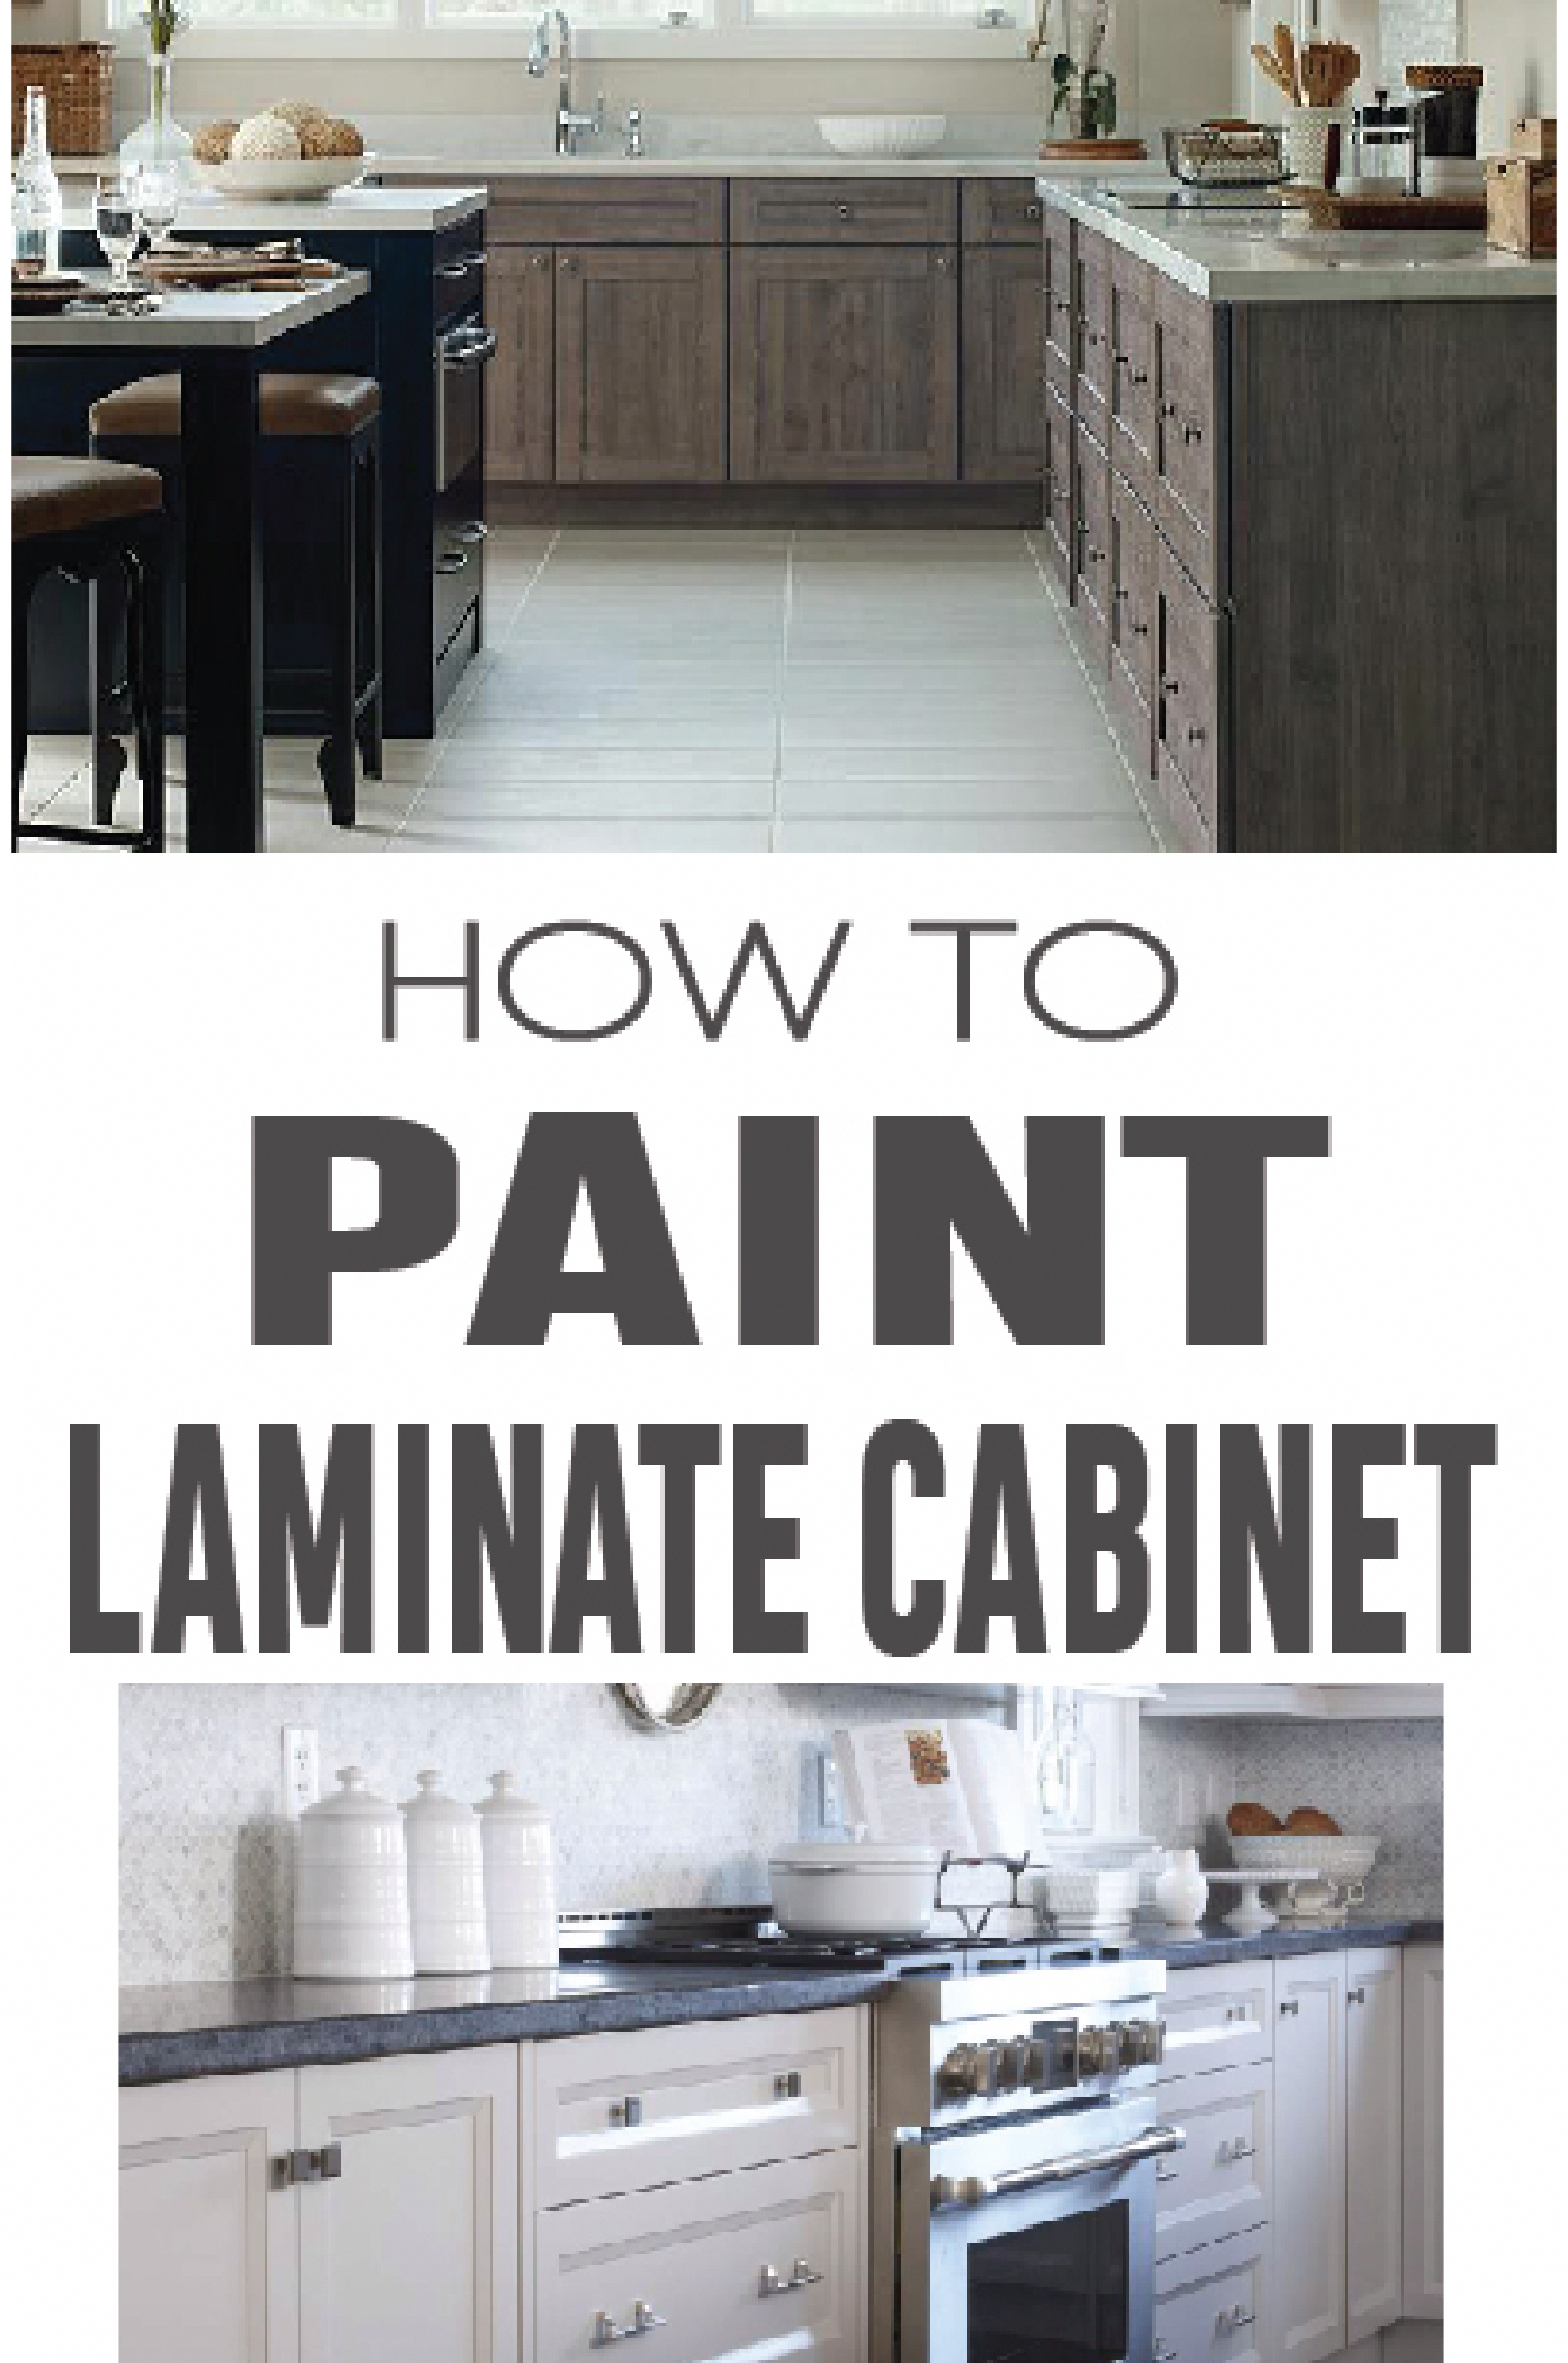 Learn How To Paint Laminate Cabinets Correctly With These Great Instructions Paintingk Painting Laminate Cabinets Laminate Cabinets Laminate Kitchen Cabinets